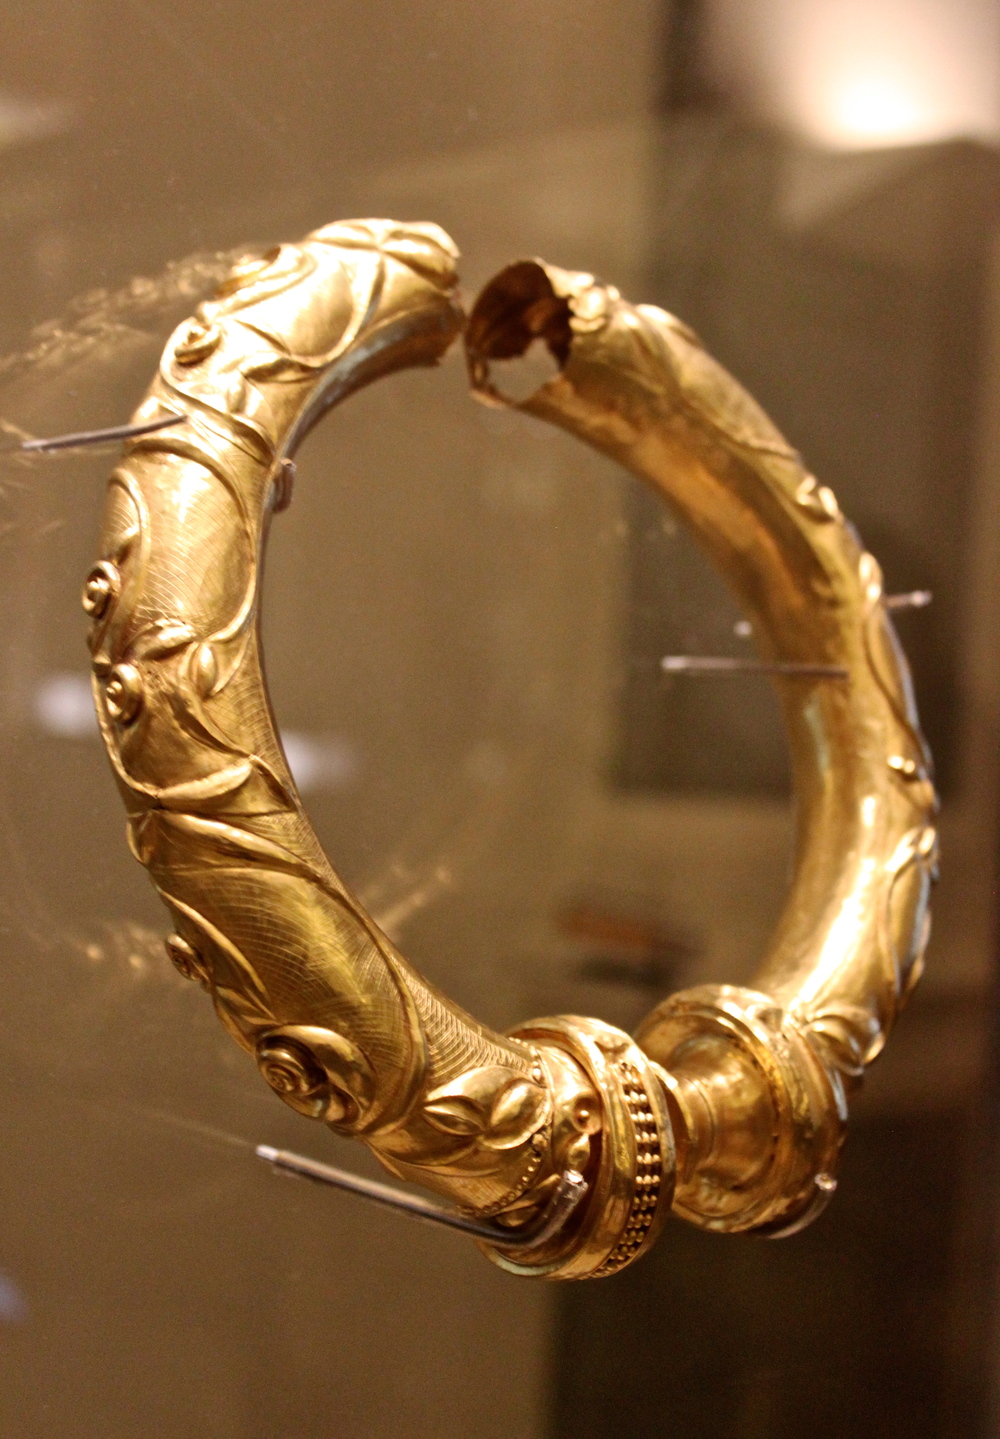 The Broighter Gold Collar. Concentric arches drawn by compass highlight raised decoration of S-shaped scrolls, trumpet shapes and lentoids. From the hoard of gold objects. Broighter, county Derry. 1st century BC.